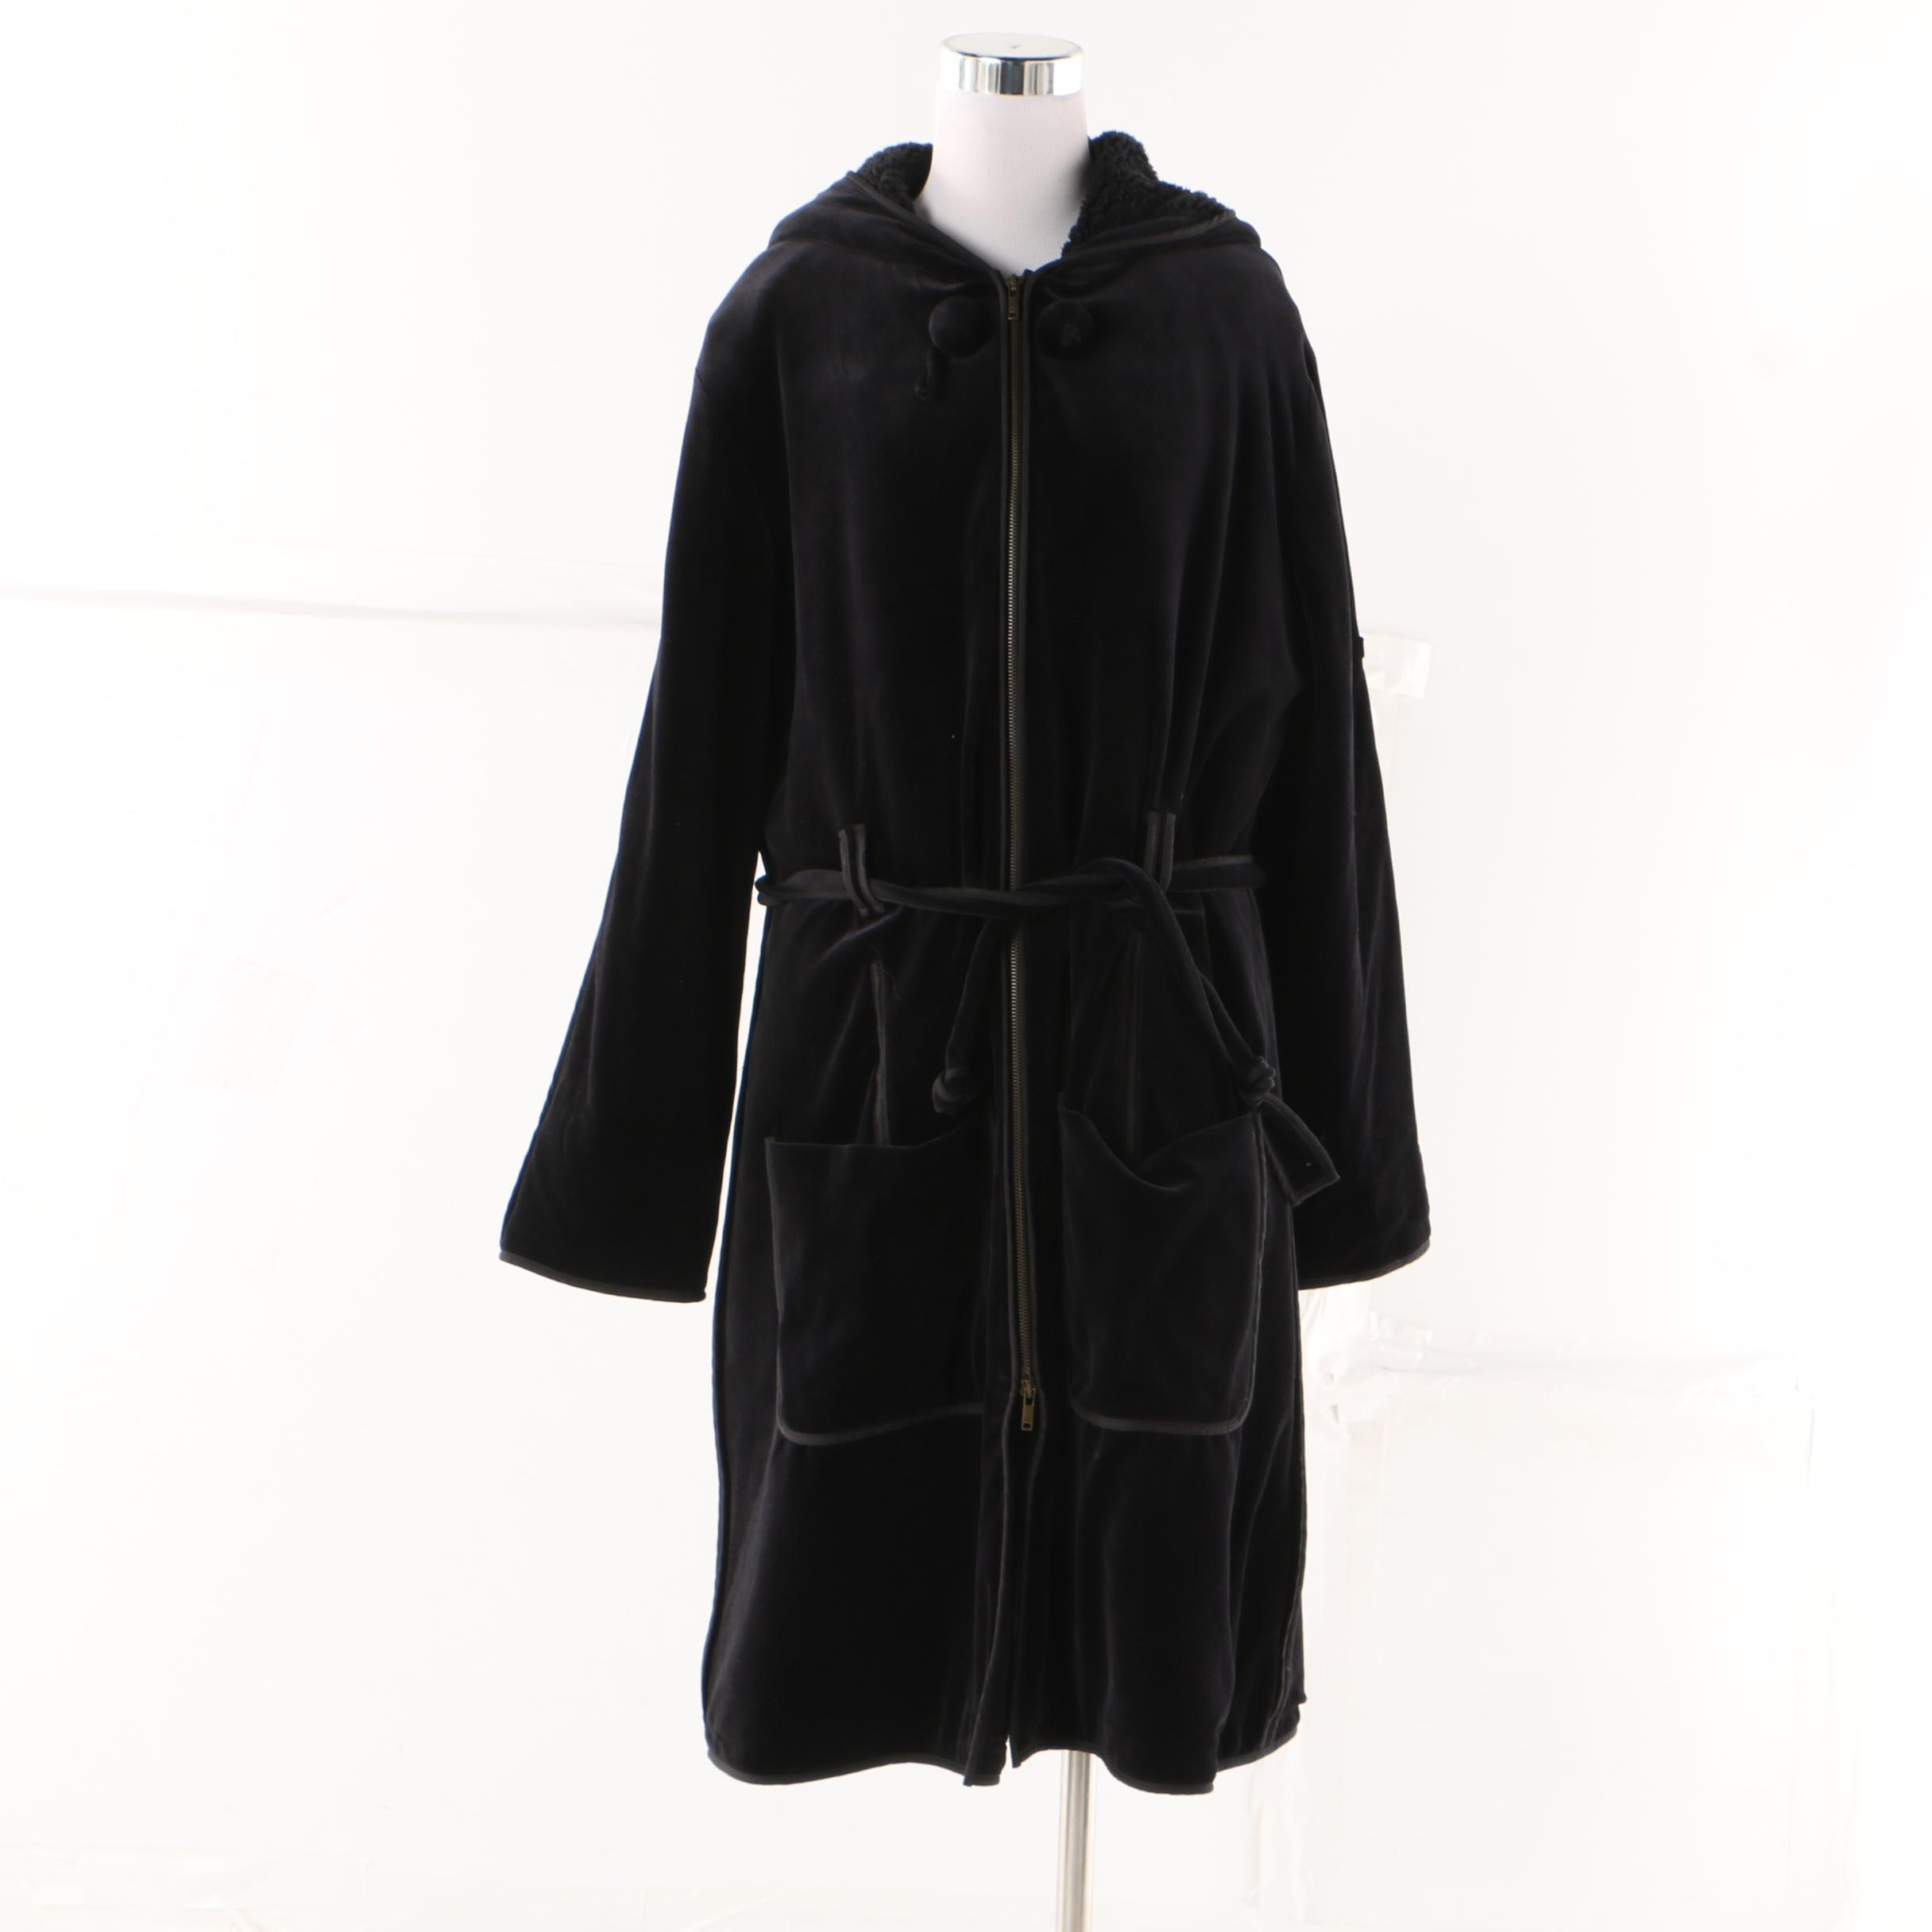 Sonia Rykiel Paris Hooded Black Velveteen Coat with Faux Shearling Lining